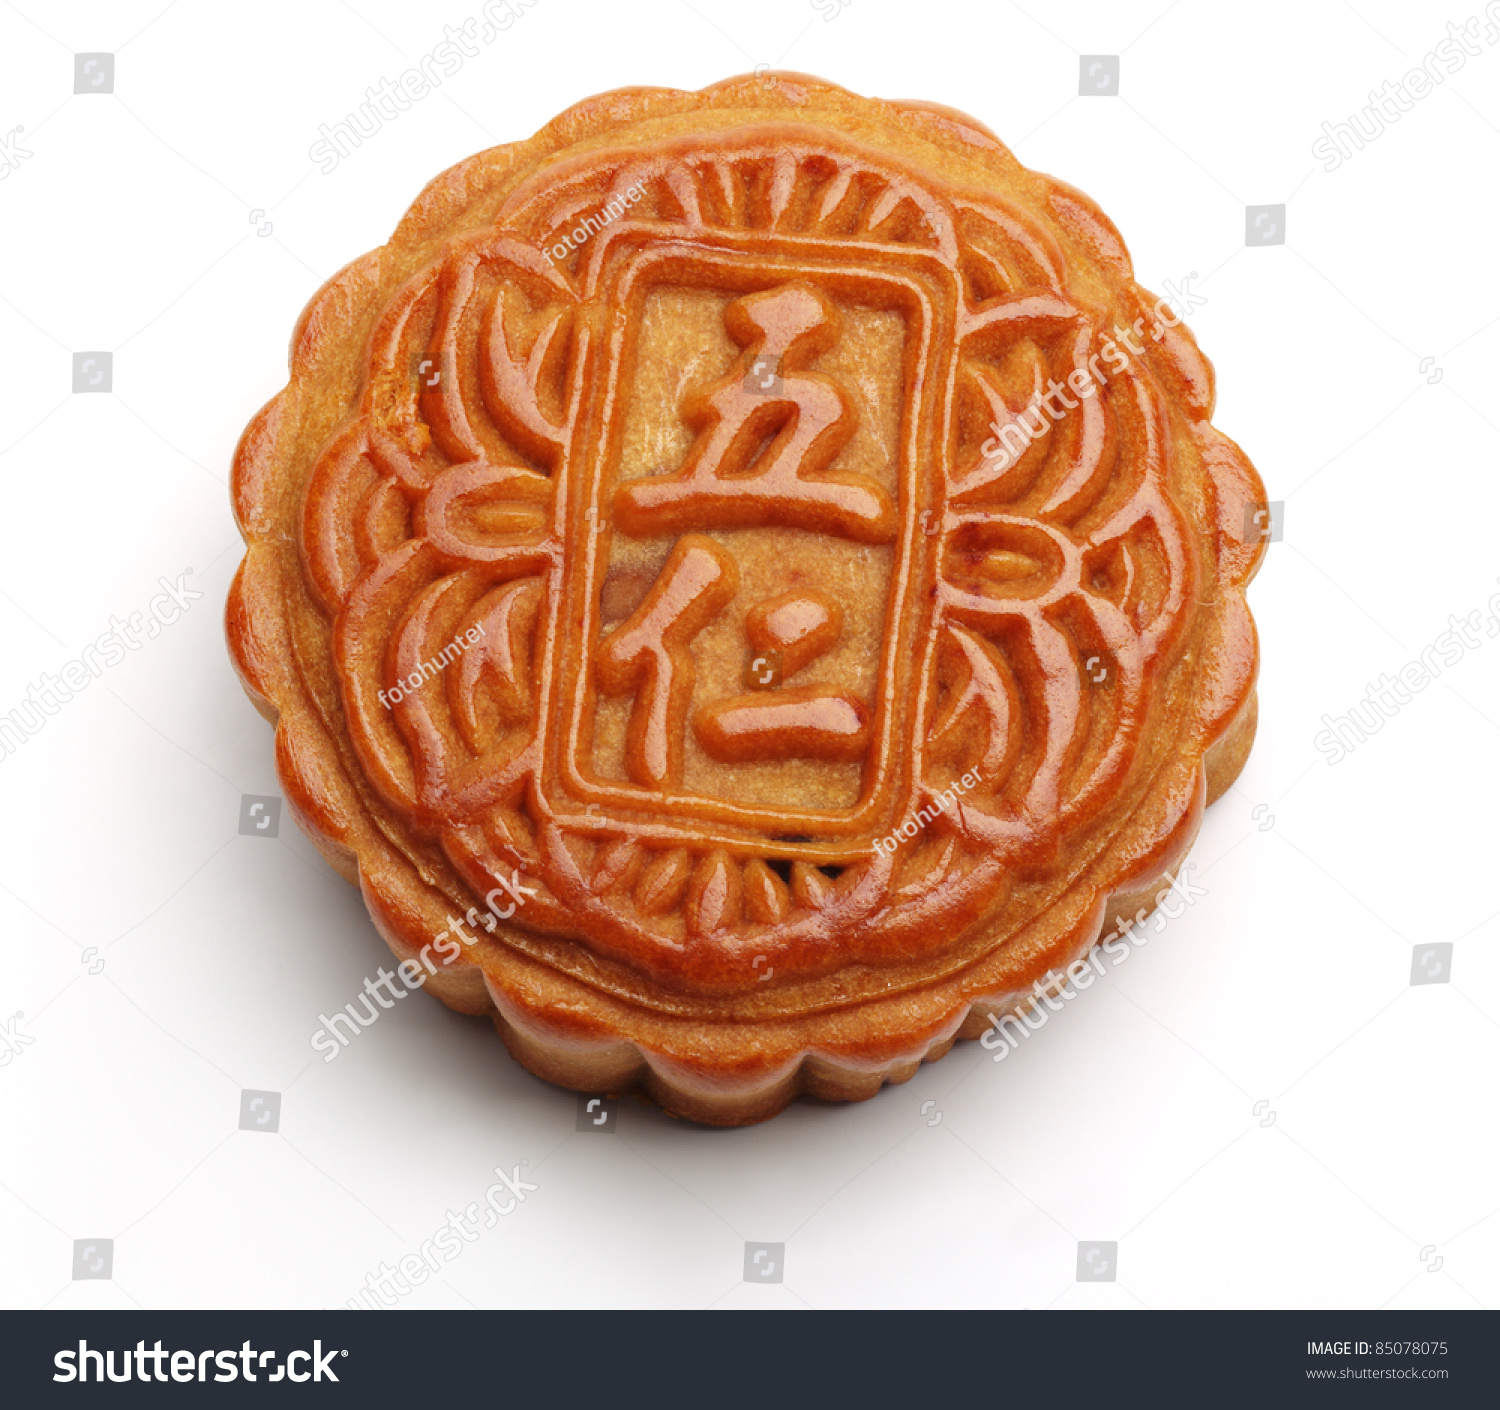 The Round Chinese Moon Cake Eaten To Celebrate The Middle Autumn Day ...